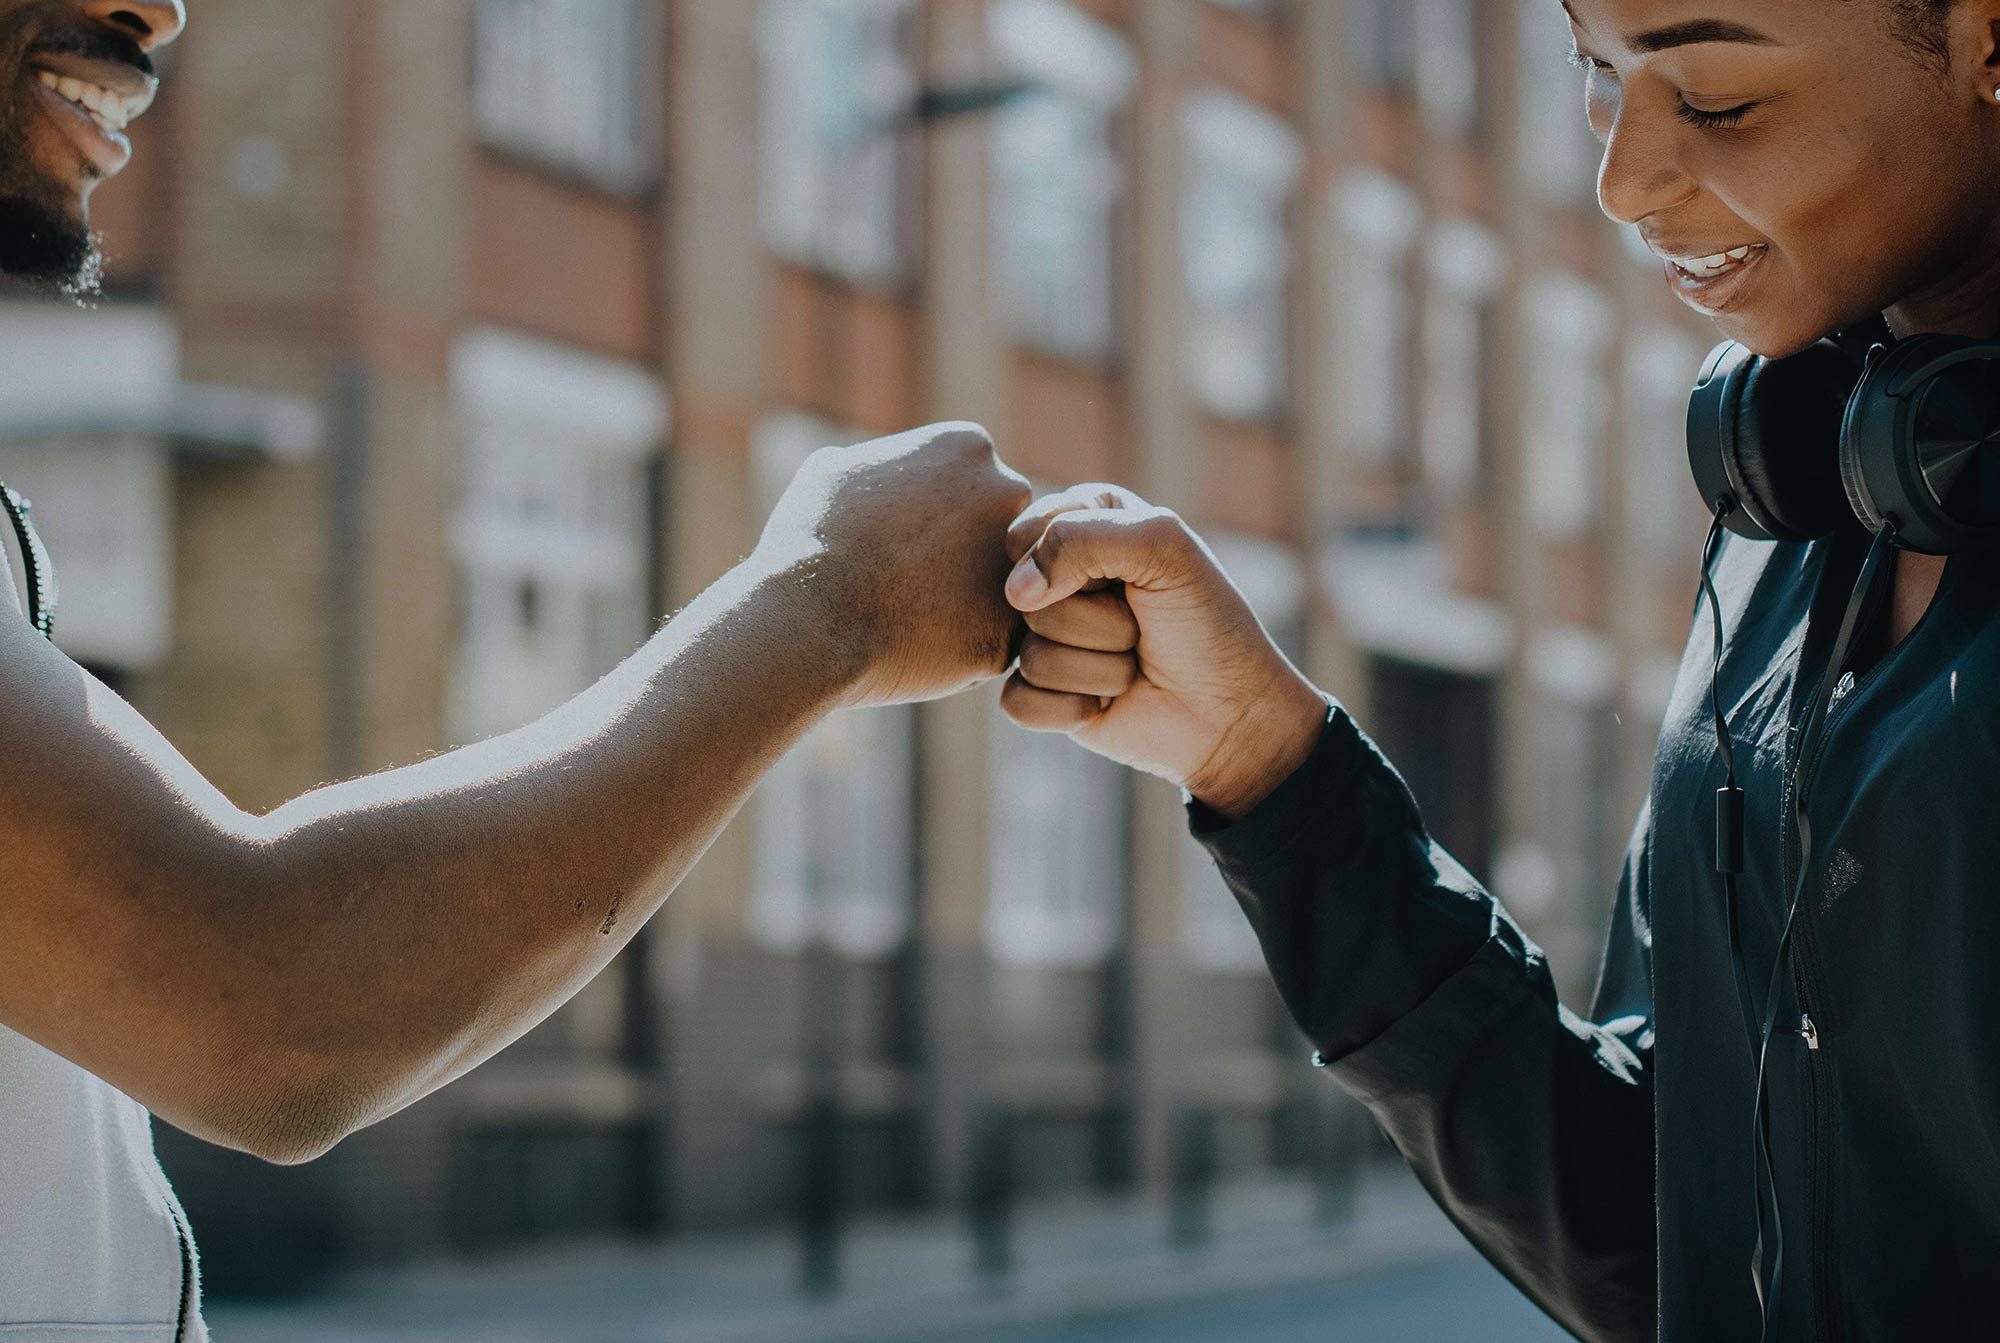 A girl and a boy are making a gesture of friendship